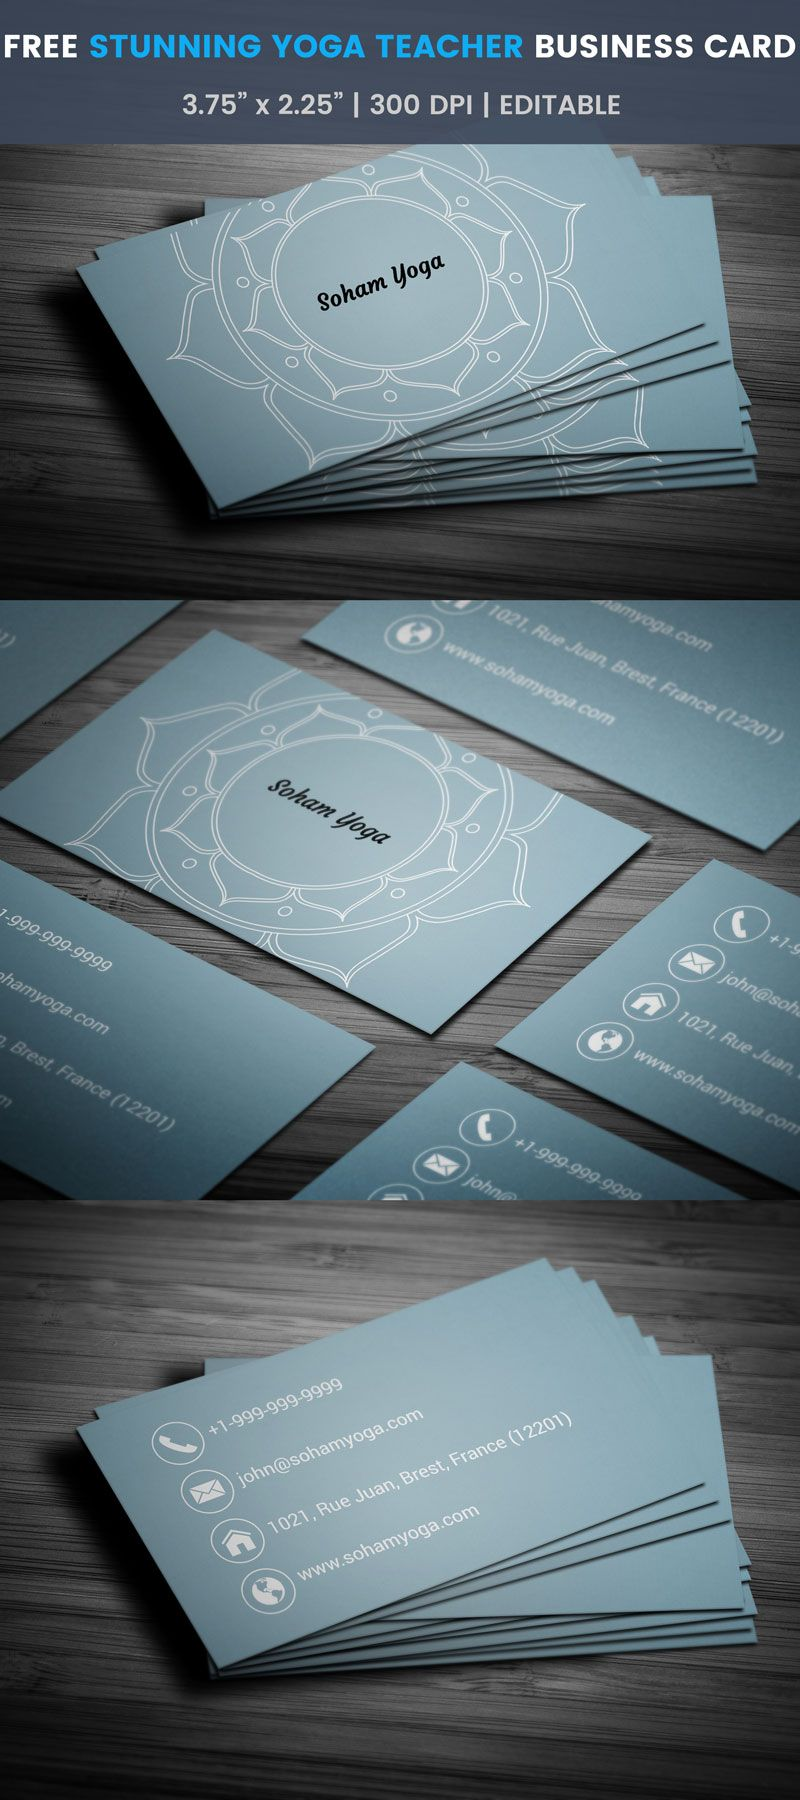 Yoga teacher business card full preview free business card free stunning yoga teacher business card template download reheart Image collections